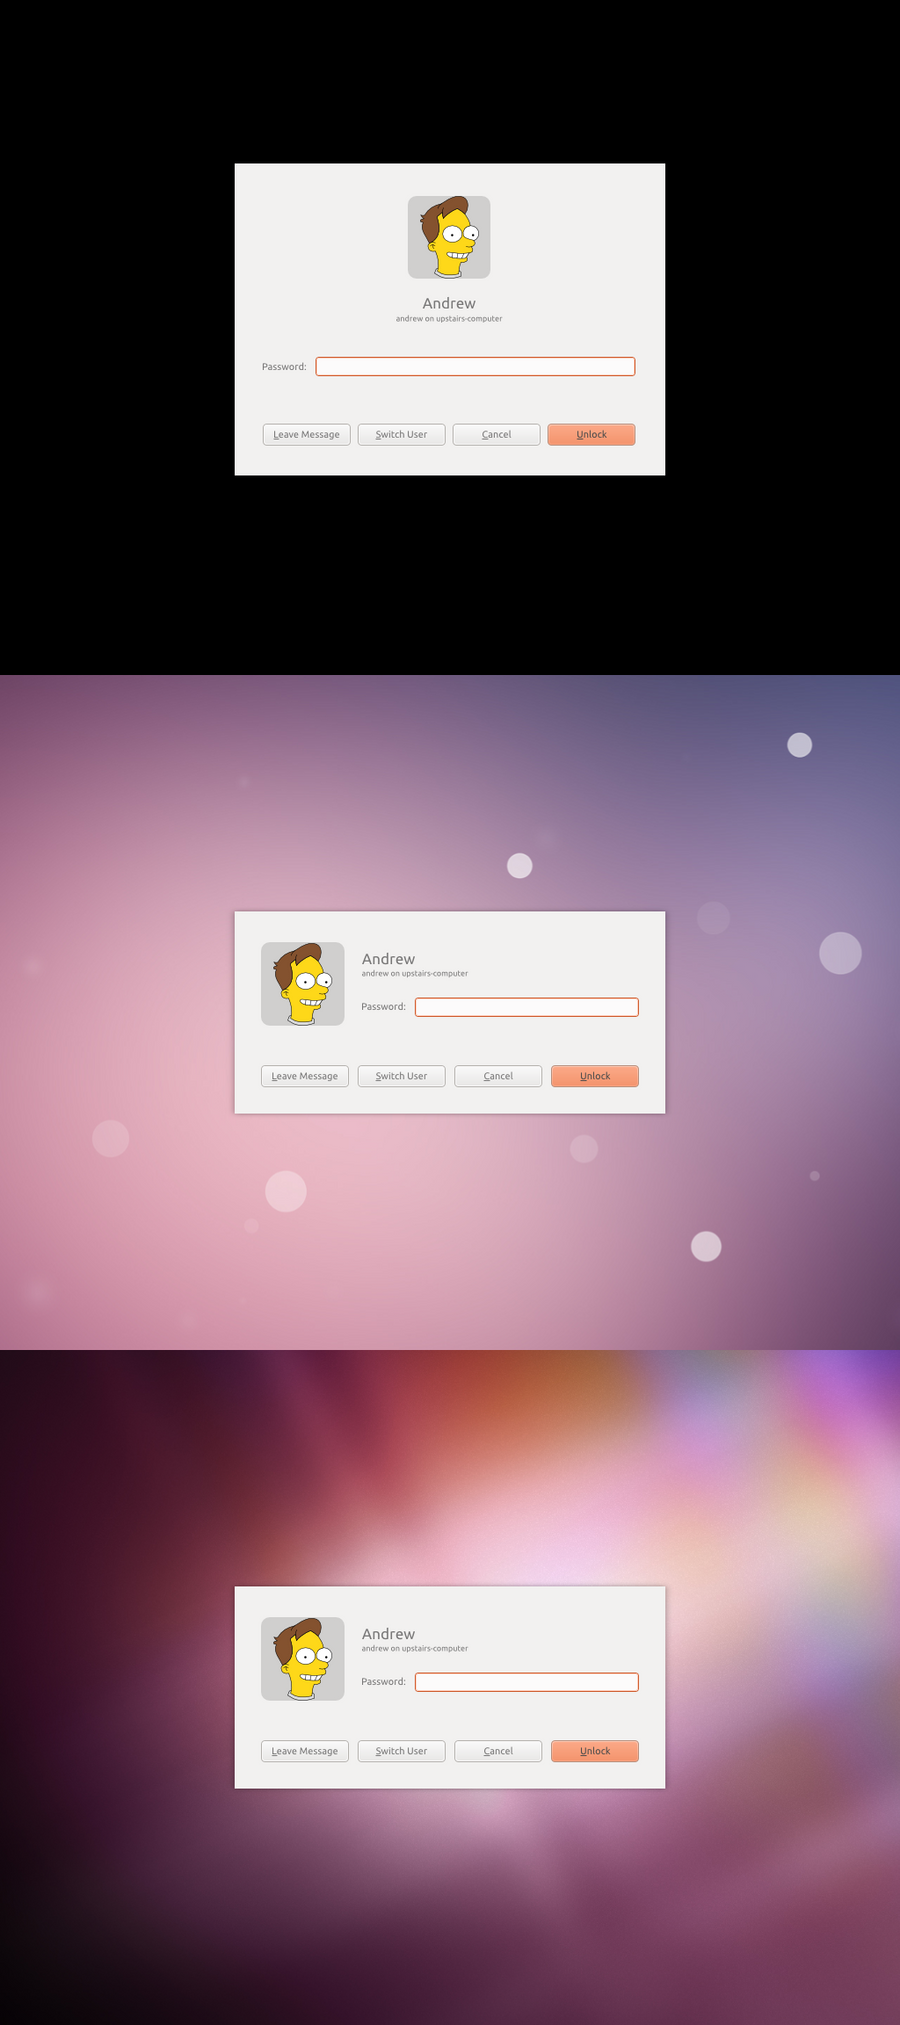 Lock Screen Dialog Mockup by and471